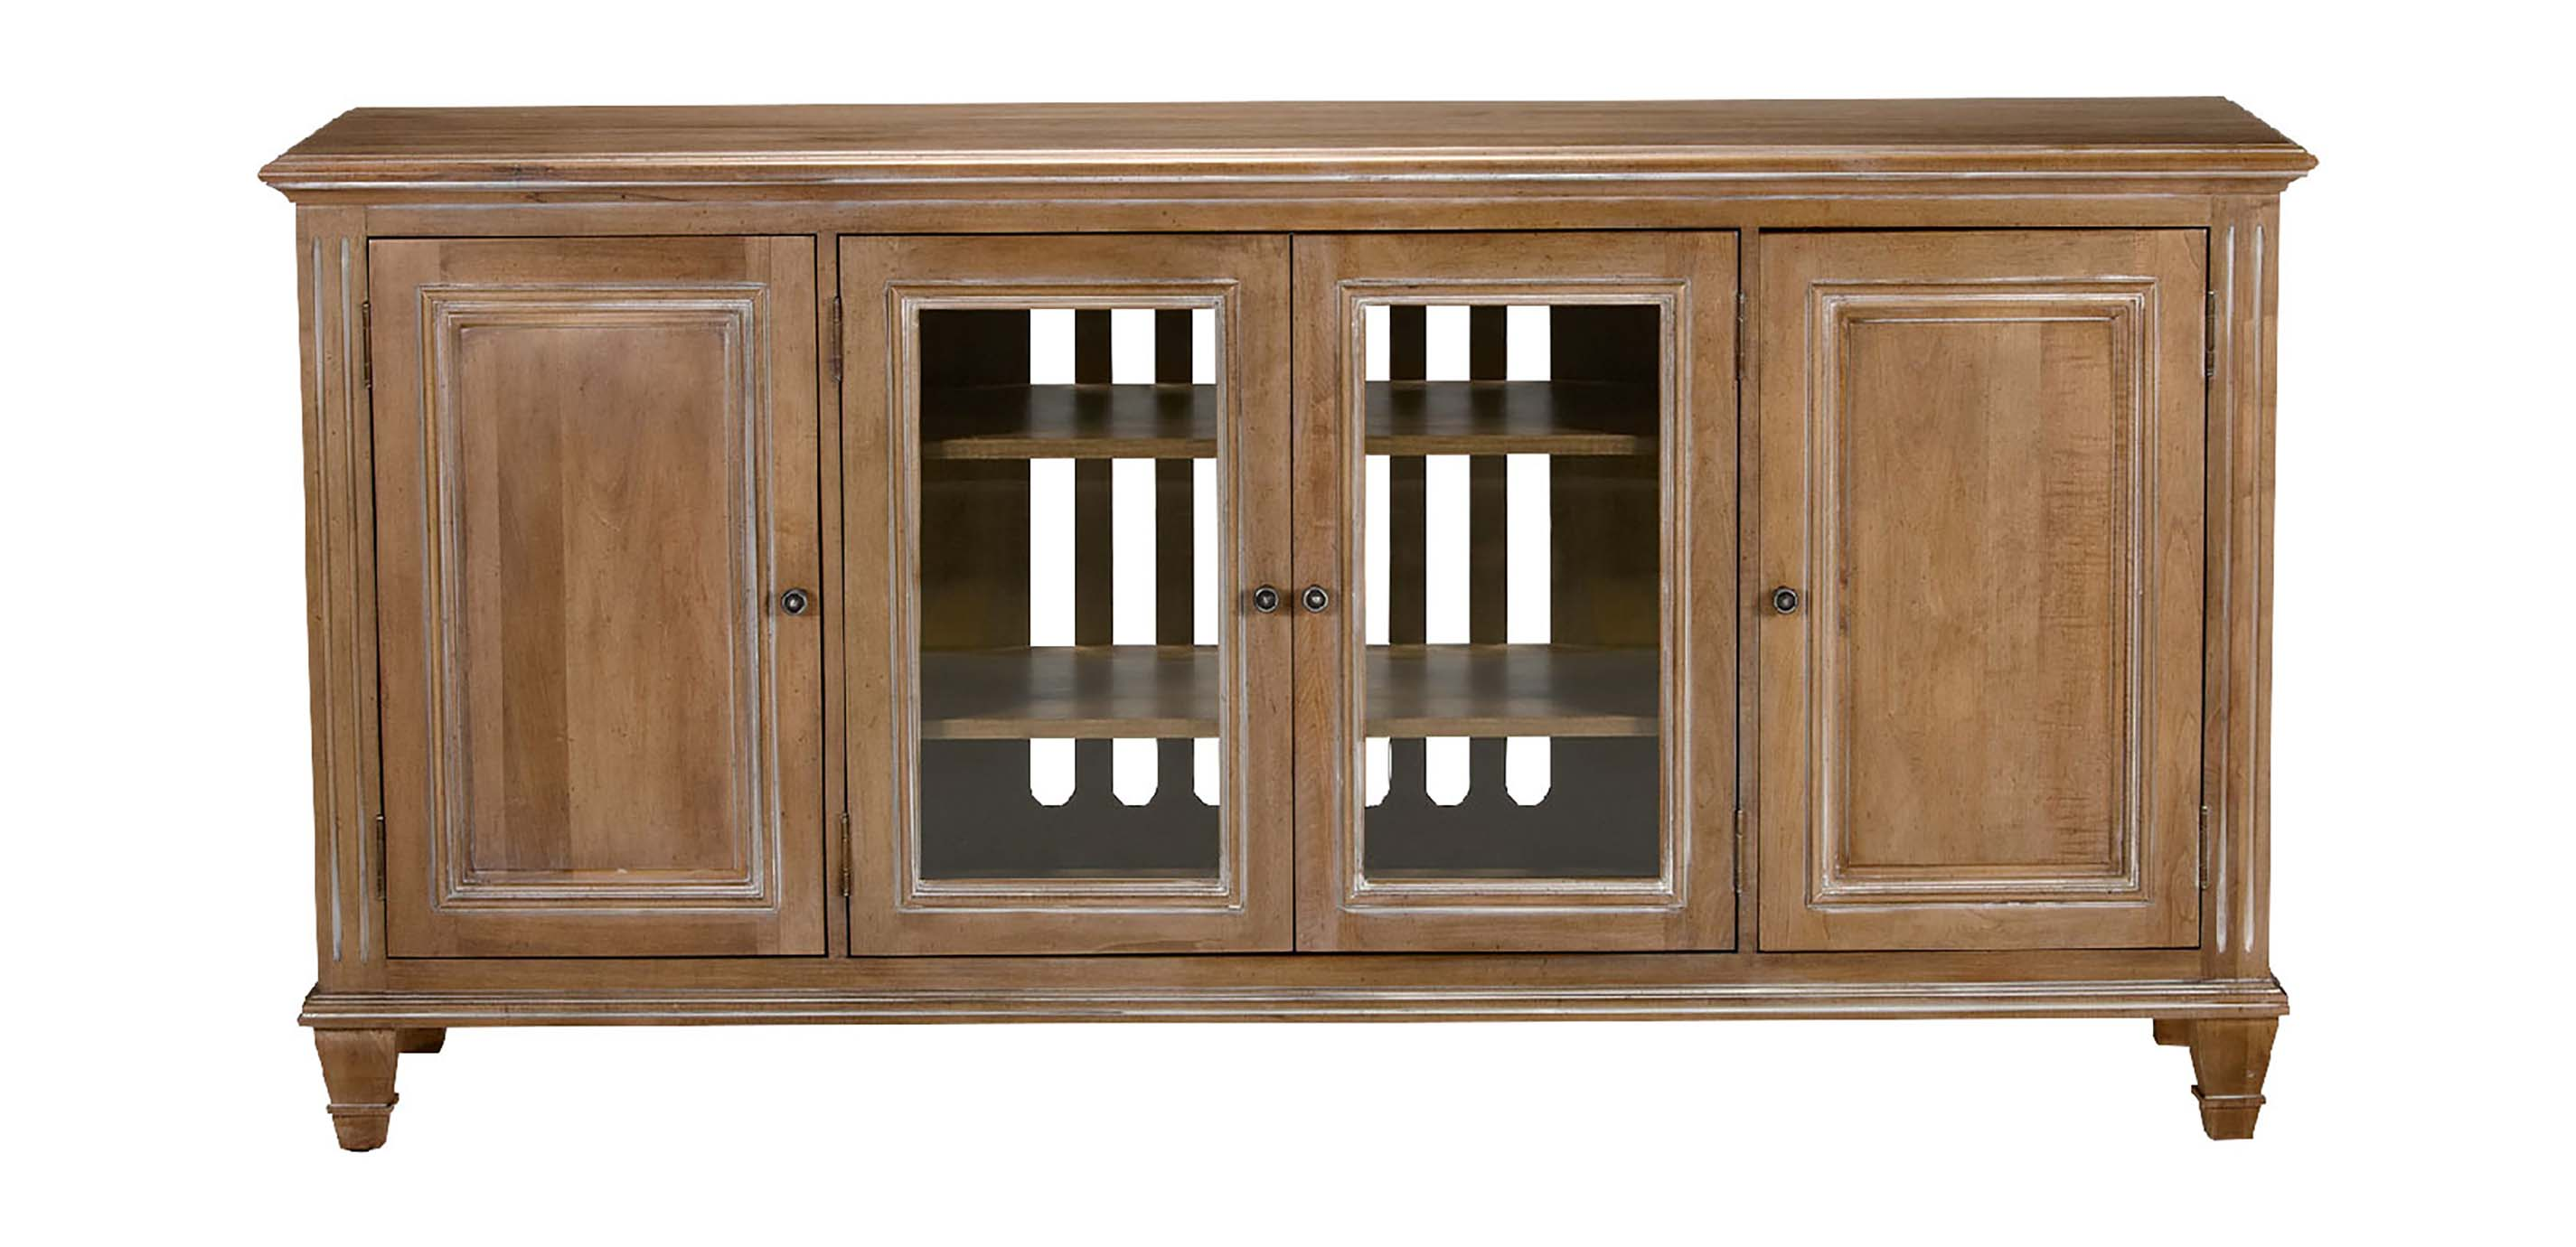 Dining Room Furniture Glass Jason Buffet With Glass Doors Buffets Sideboards And Servers